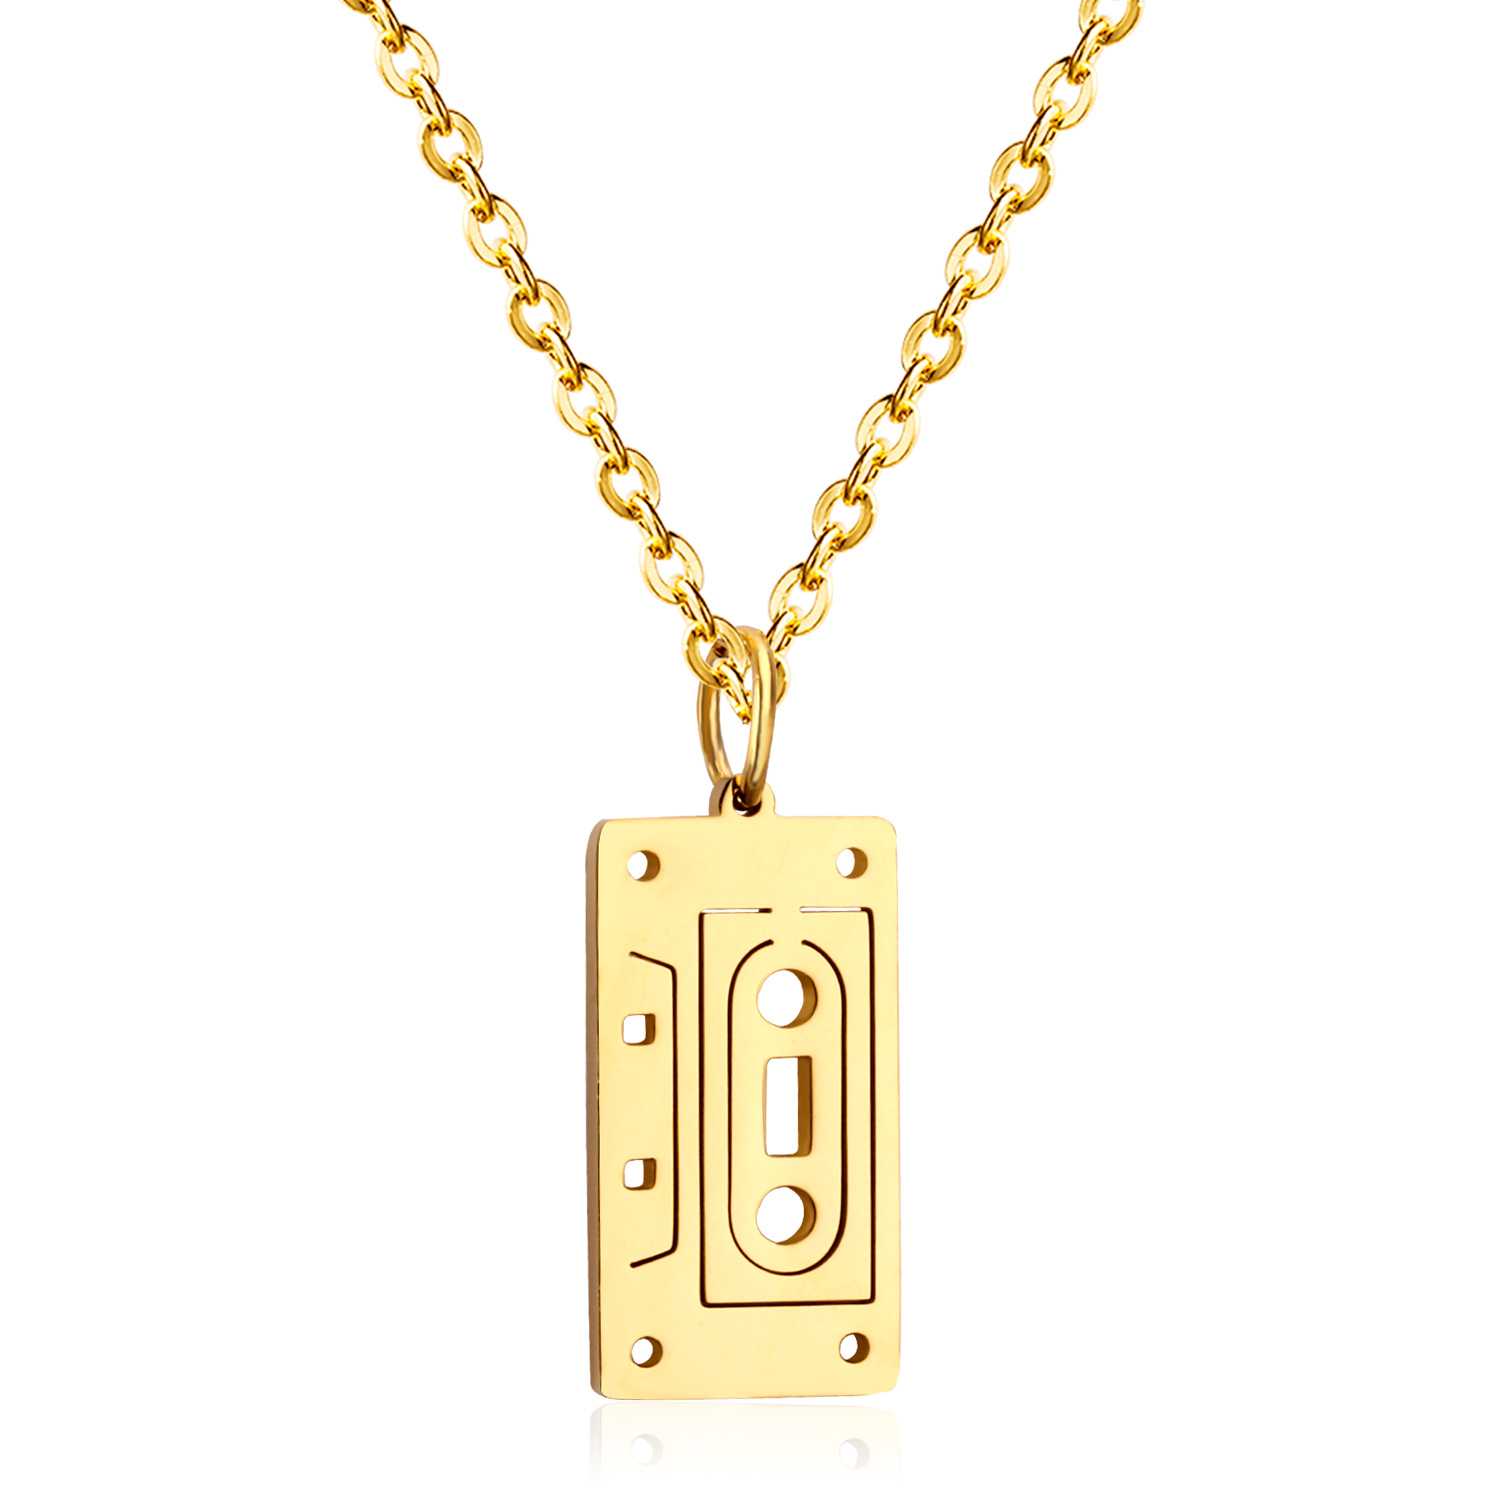 LUXUSTEEL Vintage Style Geometry Door Pendants & Necklaces Stainless Steel Gold Color Chain Necklace For Women/Men Jewelry